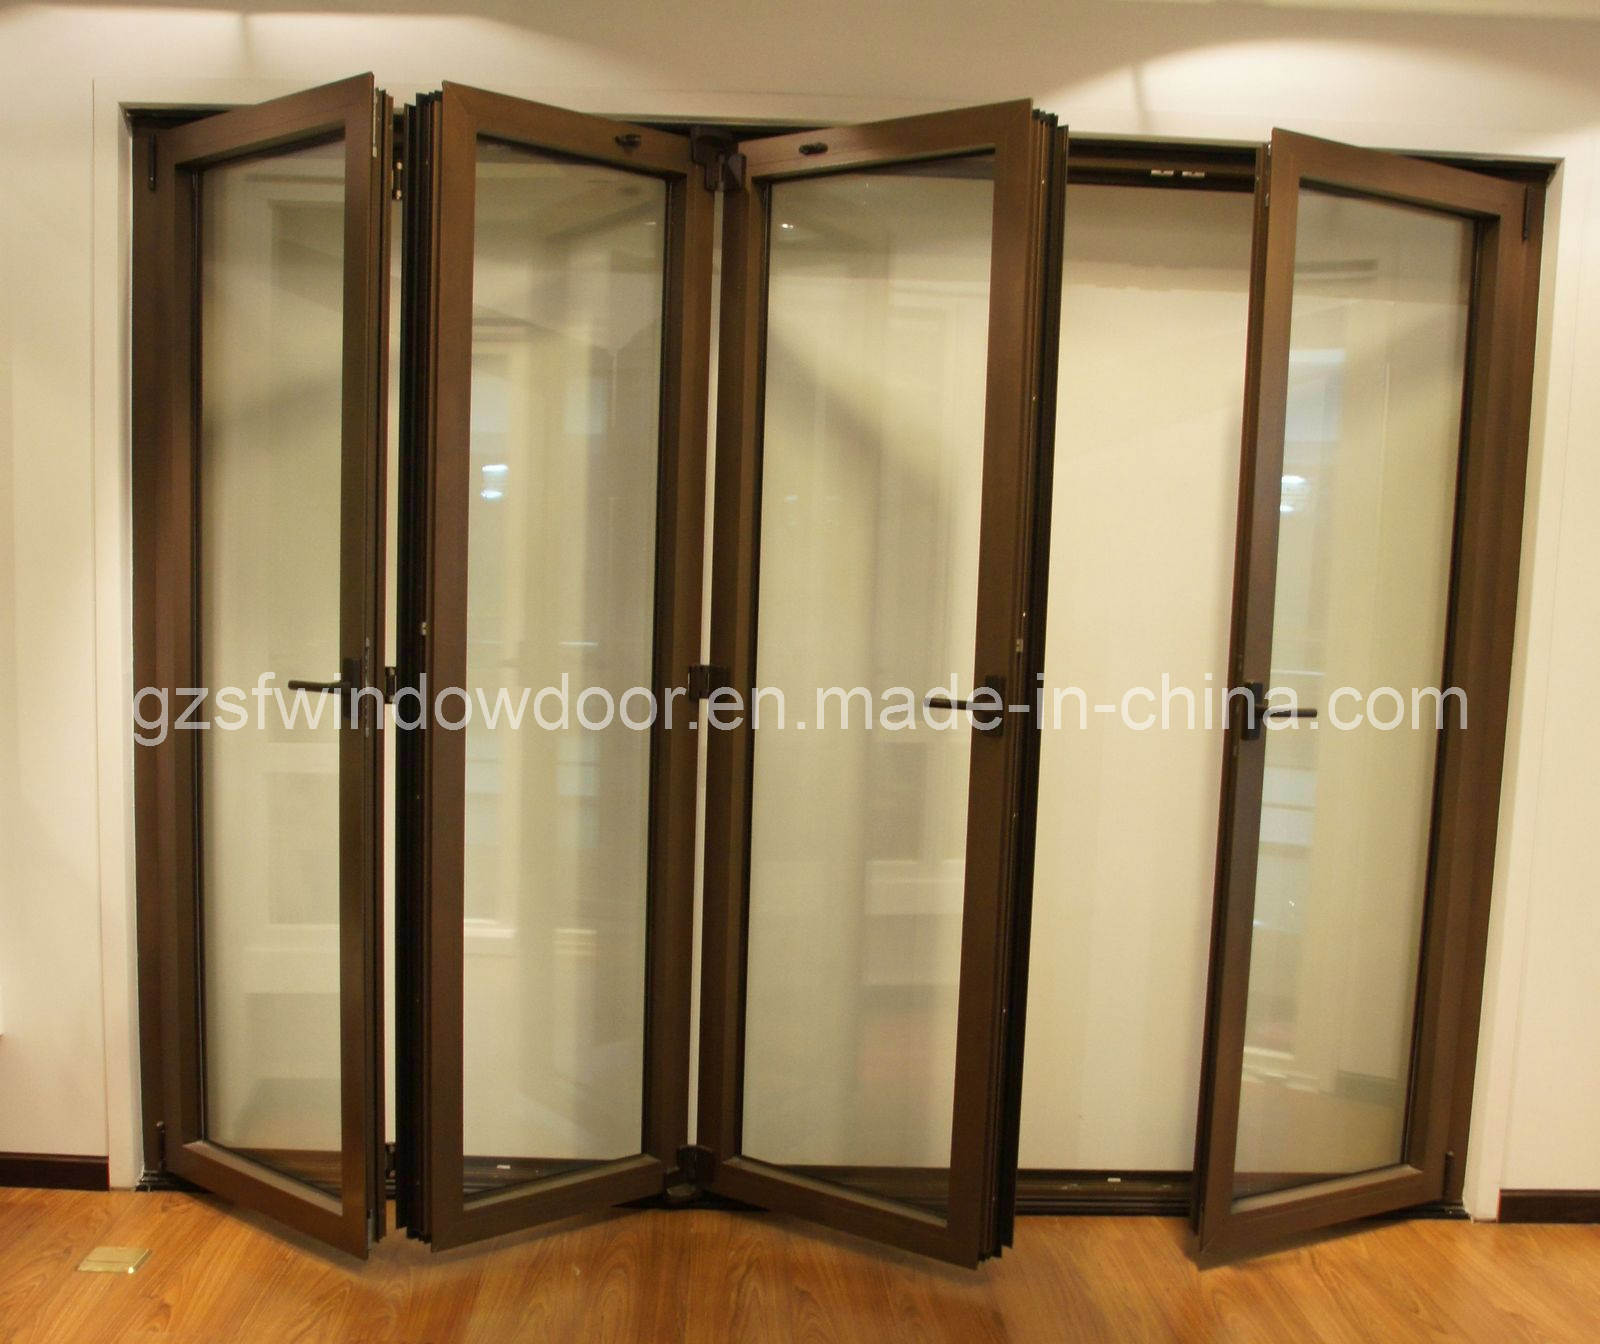 China aluminum folding doors sfad011 china aluminum for Folding doors